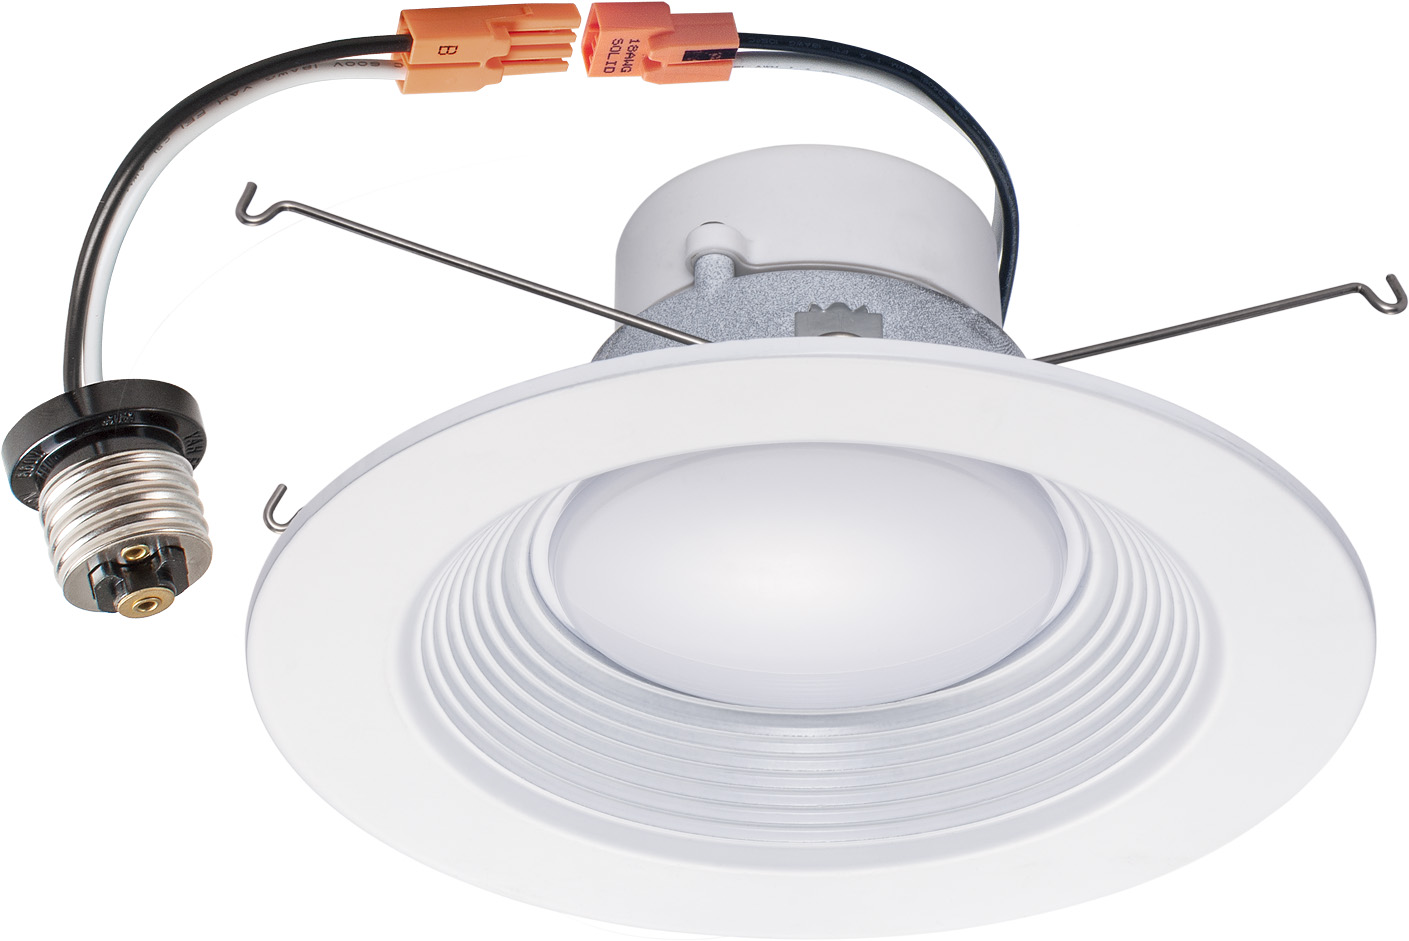 Recessed Lighting Downlight Trim 12 Pack 5 6 Inch 16w Led Recessed Dimmable